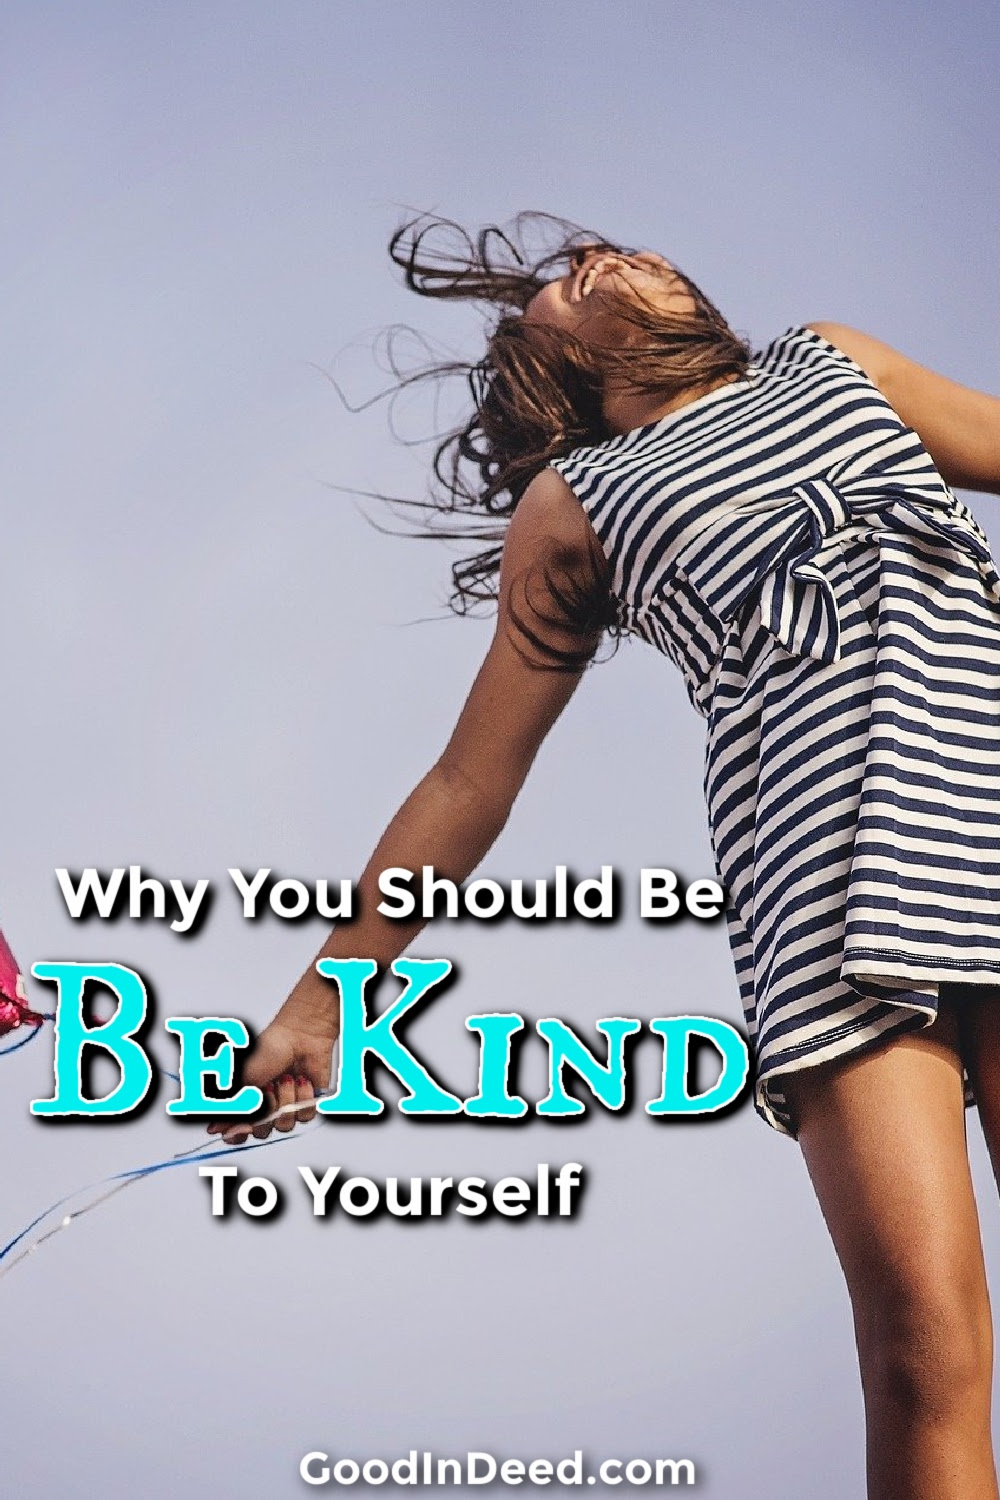 You should be kind to yourself in as many ways as possible so that you can make a difference in the lives of those around you.